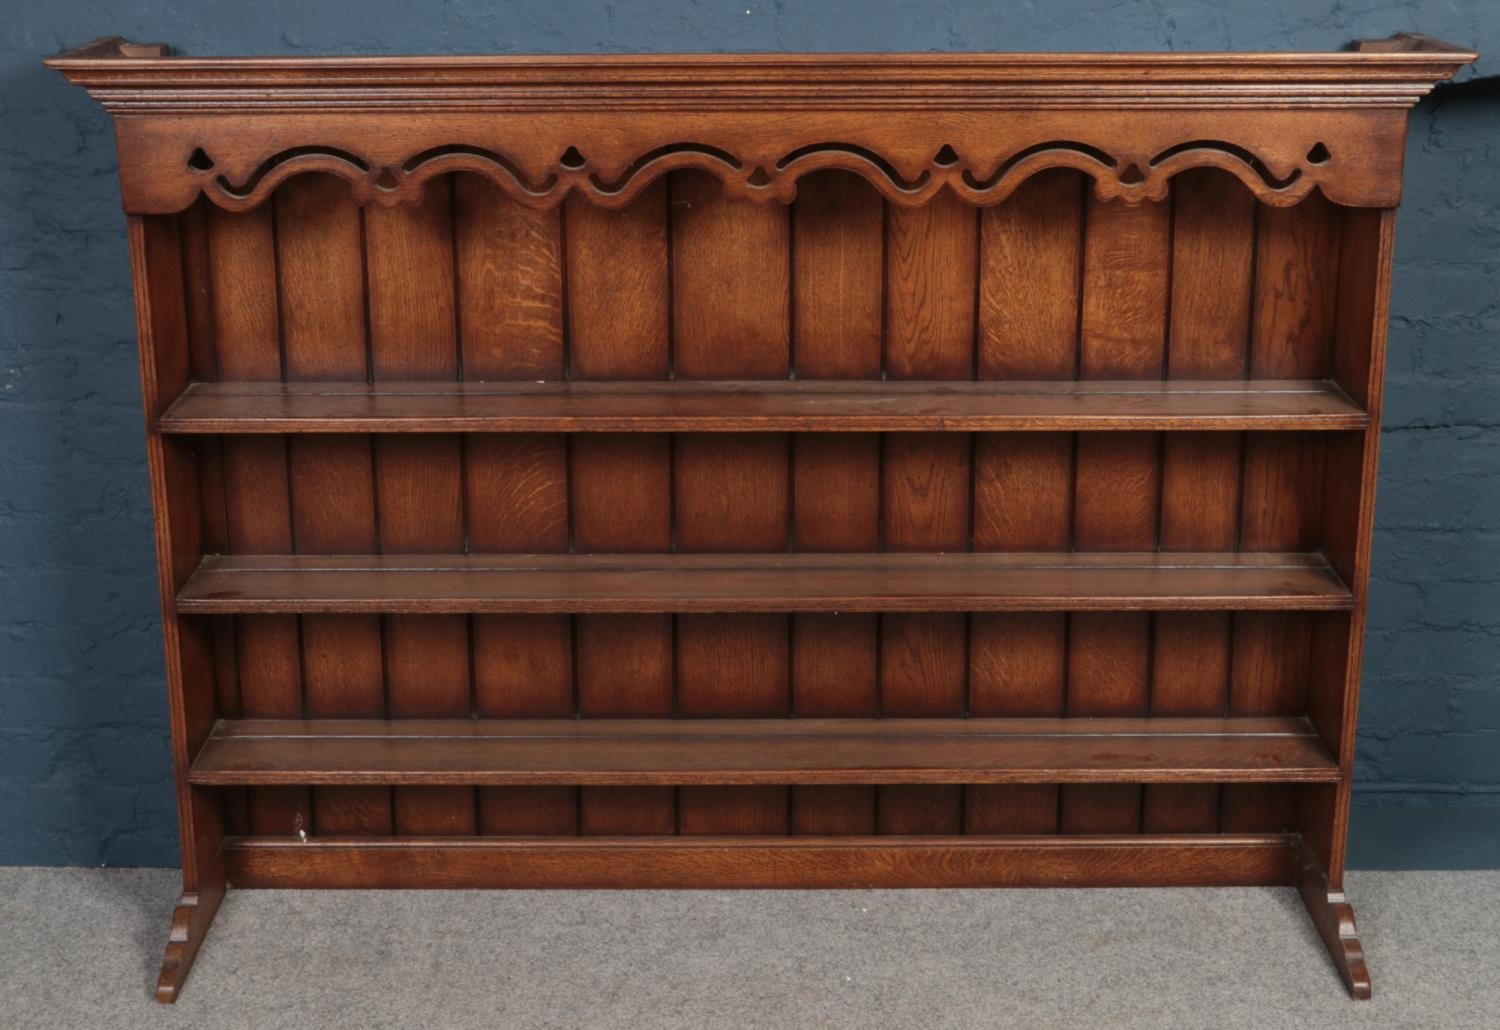 A large carved oak dresser top fitted with three shelves. (H130cm x W183cm x D38cm)